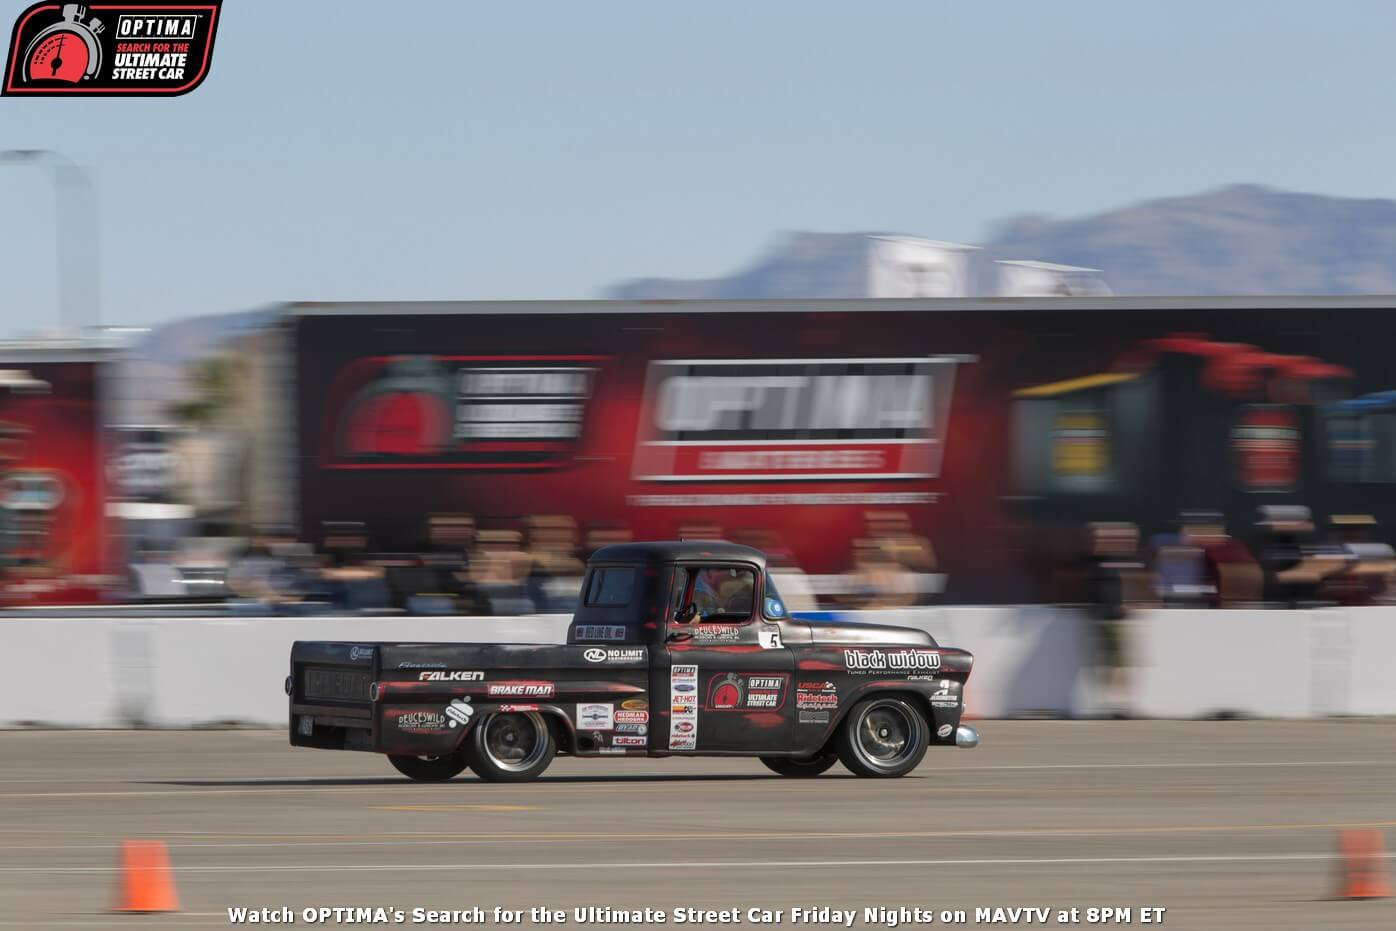 i-wes-drelleshak-1959-chevrolet-apache-RideTech-Autocross-2014-OPTIMA-Ultimate-Street-Car-Invitational_13